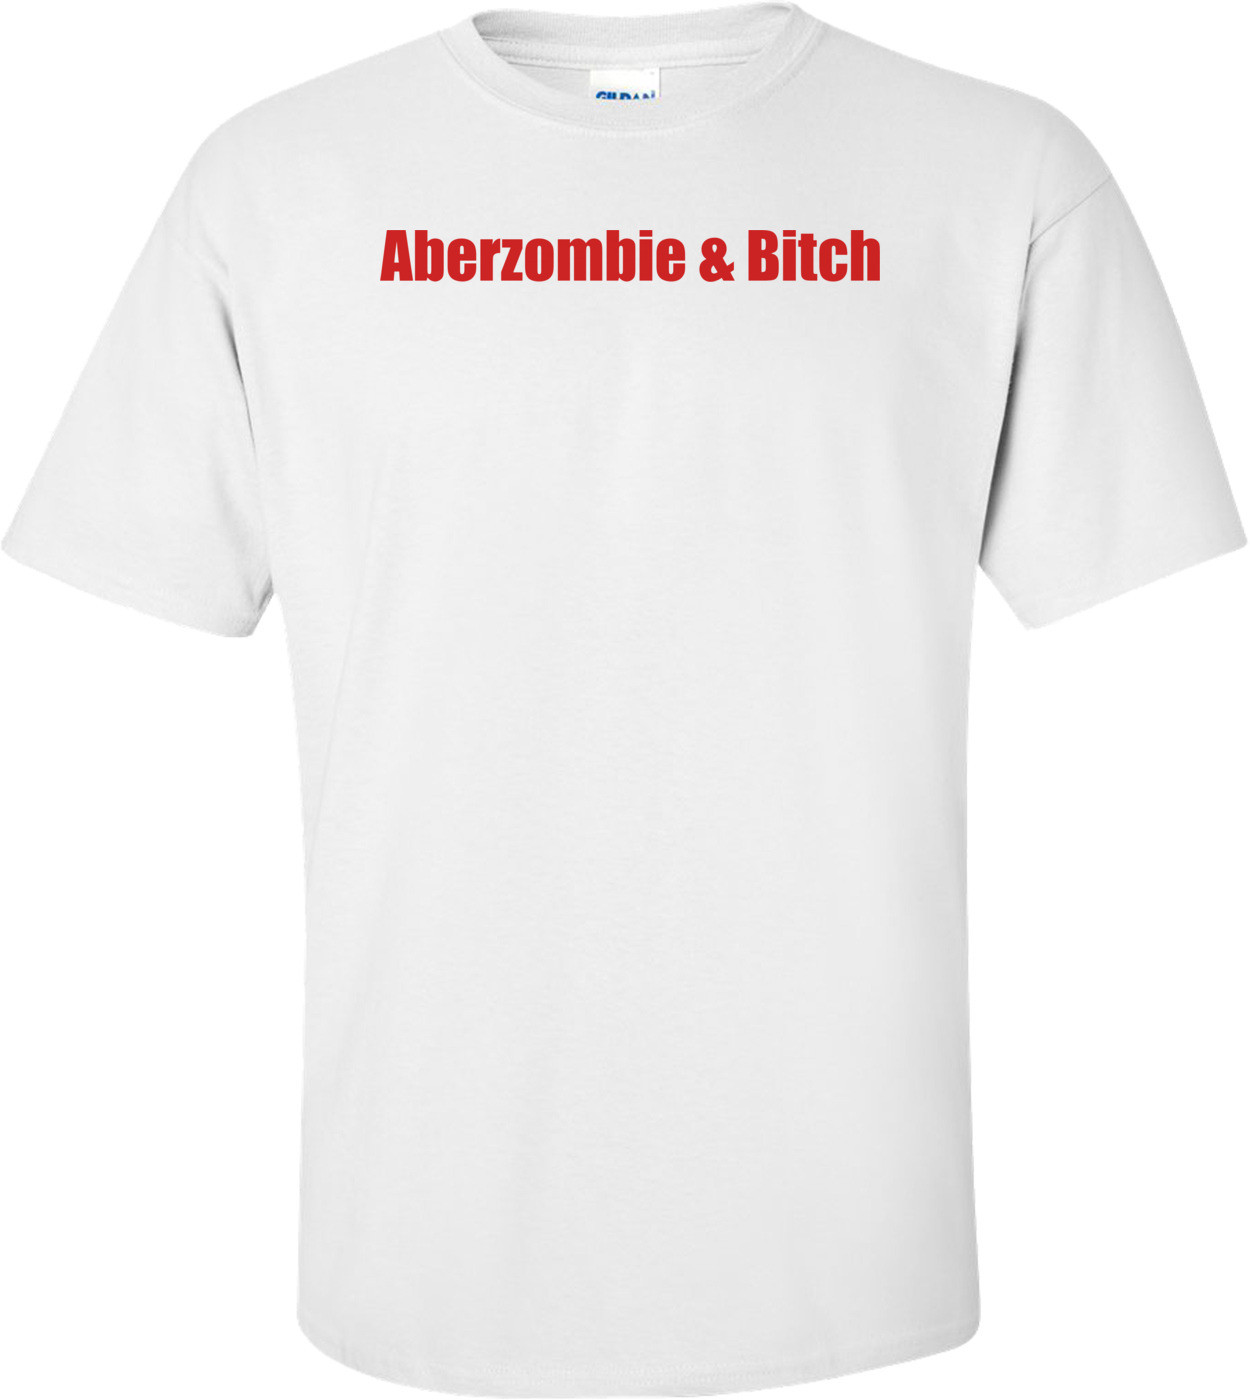 Aberzombie & Bitch Shirt